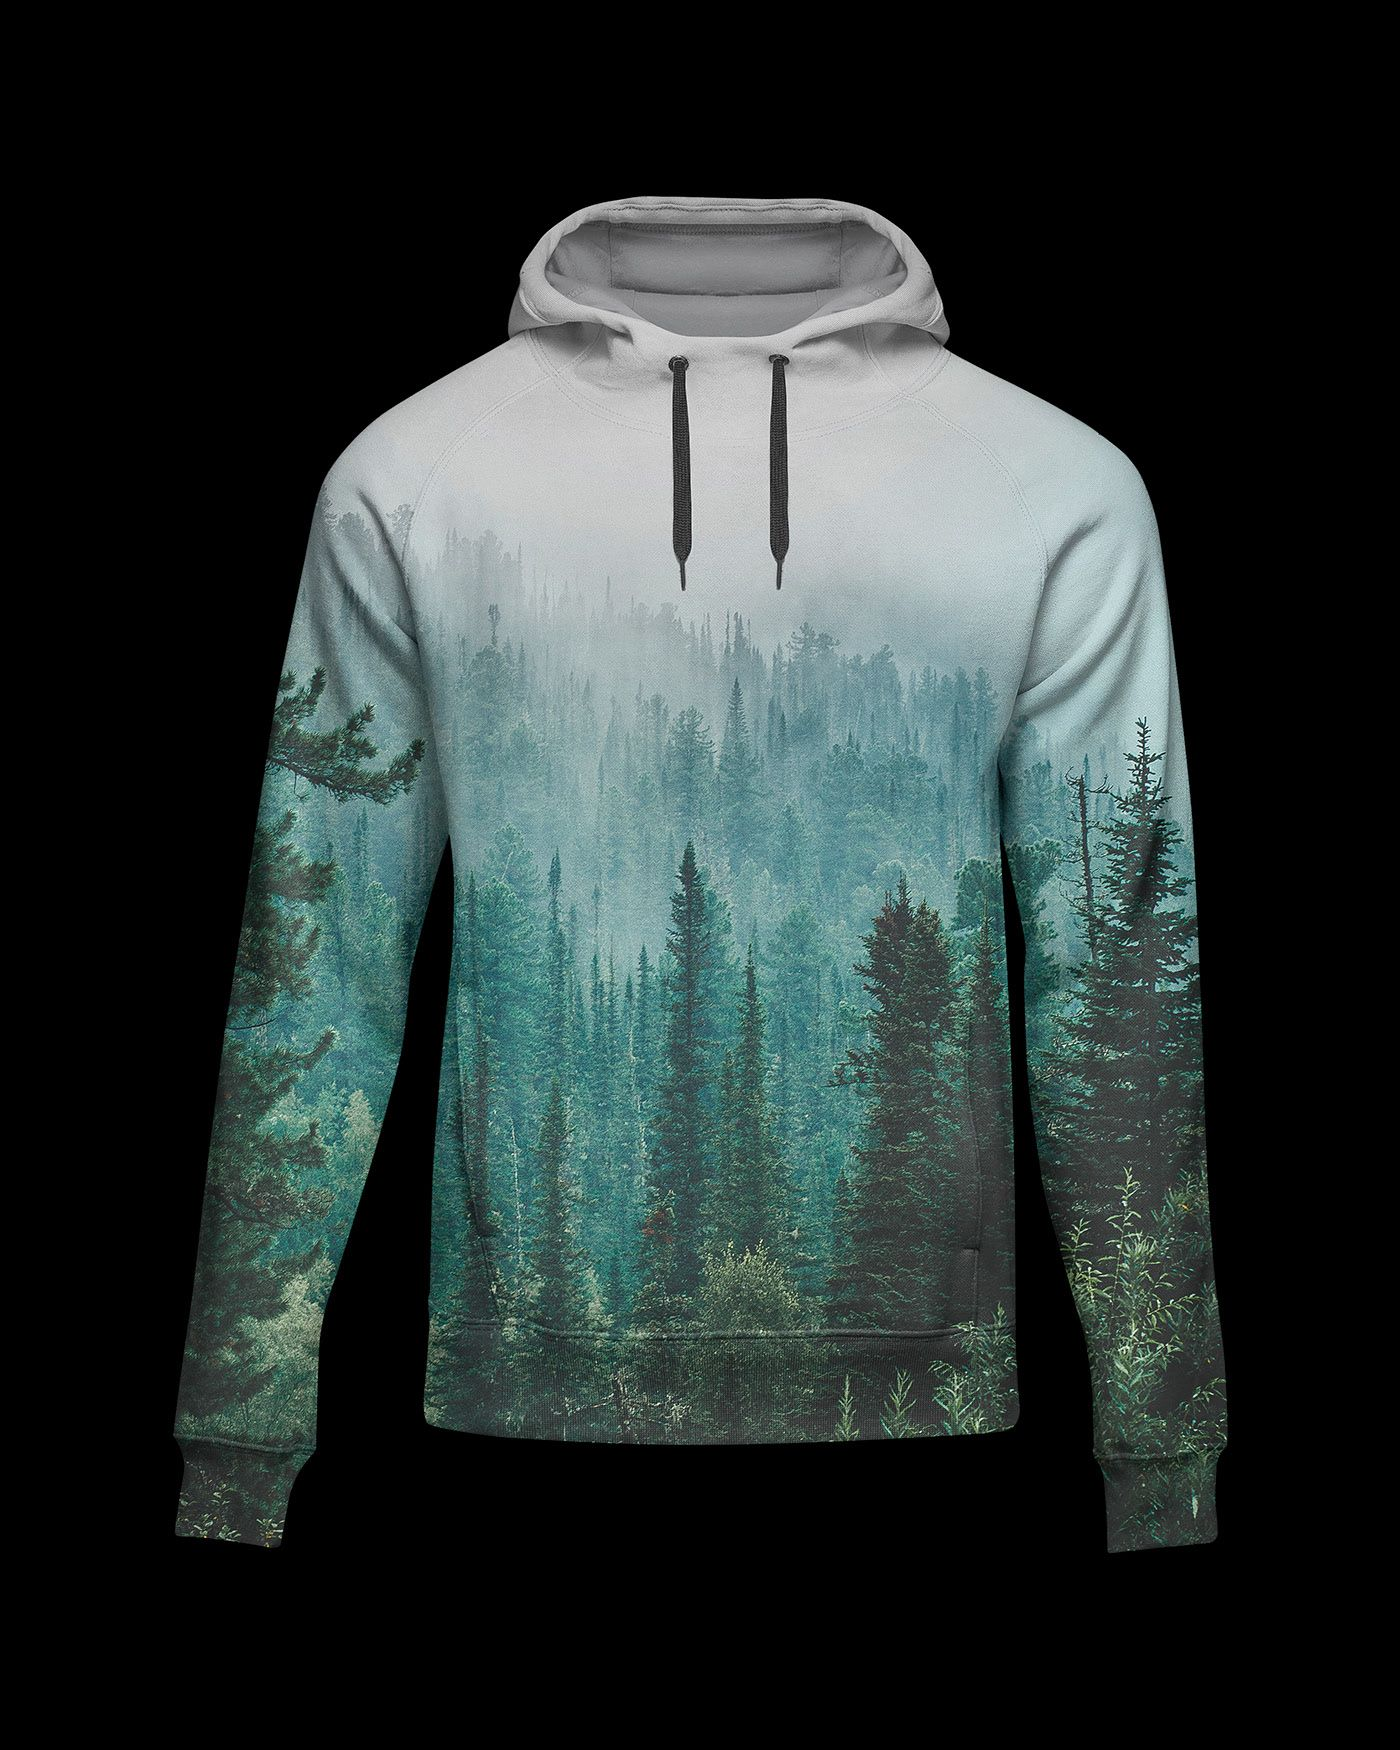 Download Hoodie Mockup Free Download Psd On Behance Hoodie Mockup Free Hoodie Mockup Mockup Free Psd